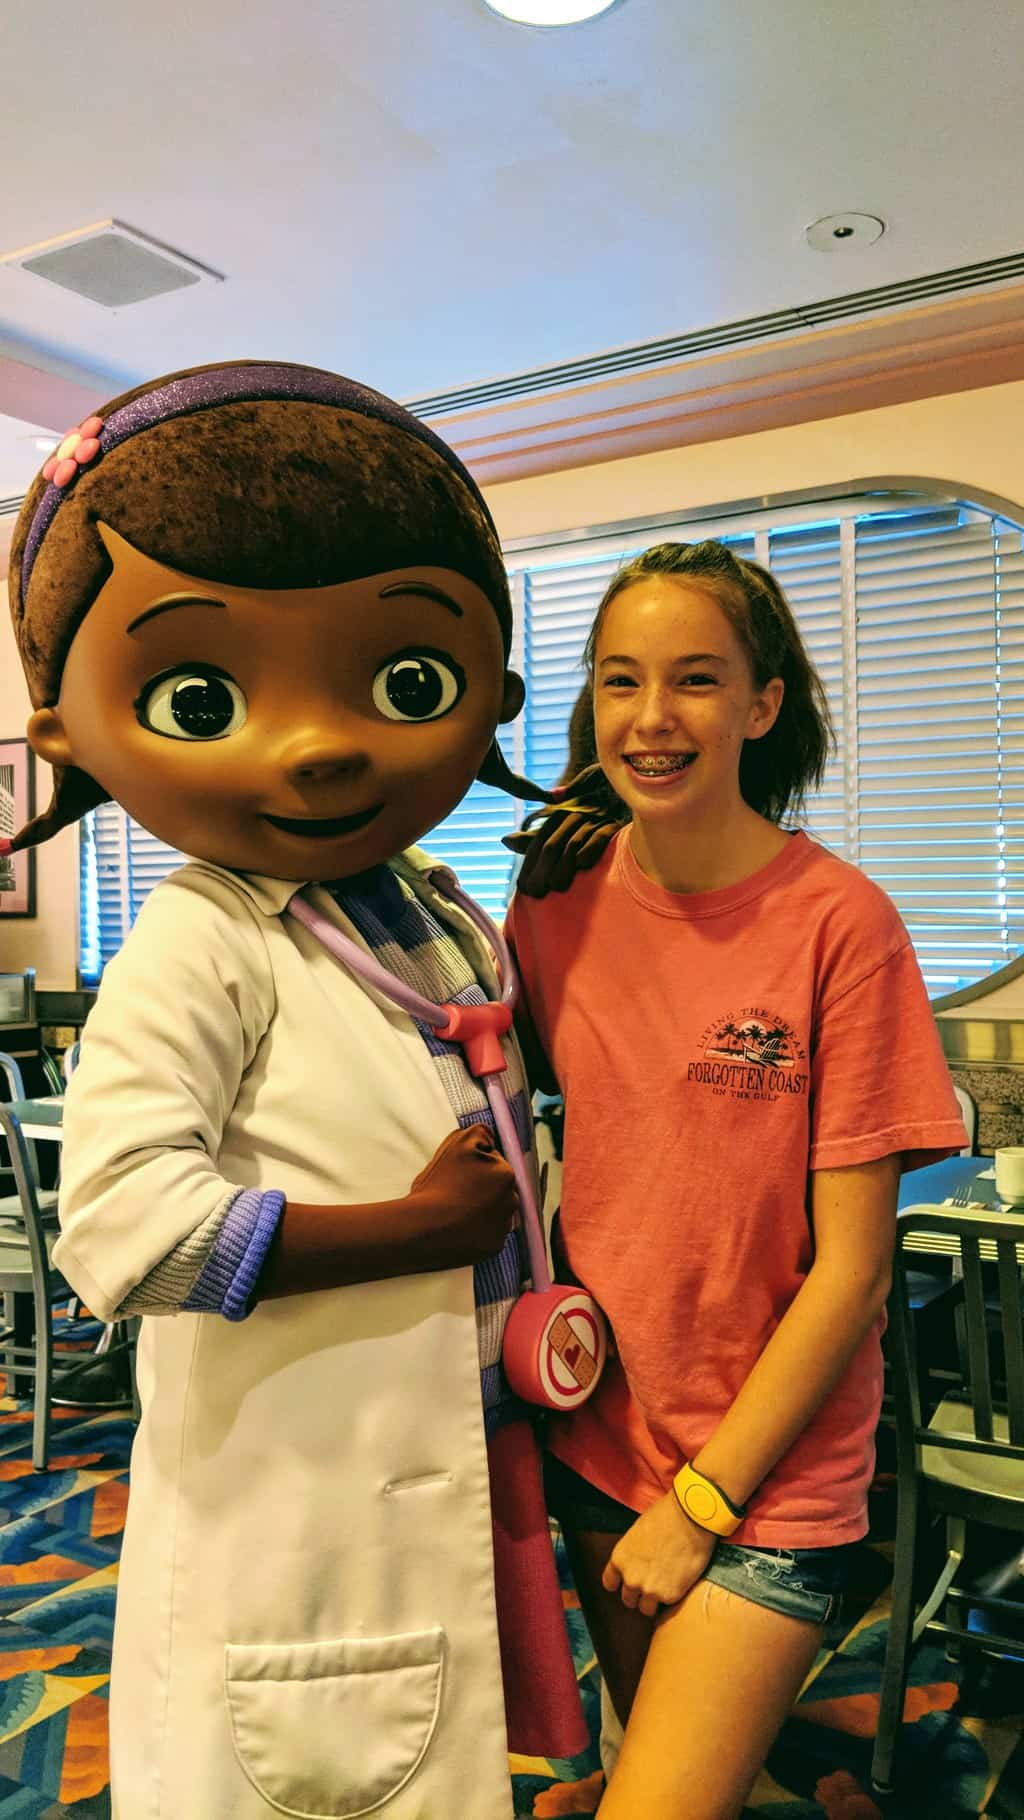 Review hollywood and vine disney junior play n dine breakfast with doc mcstuffins continues to meet here and offers a regular meet and greet as well she was recently removed from animal kingdom though m4hsunfo